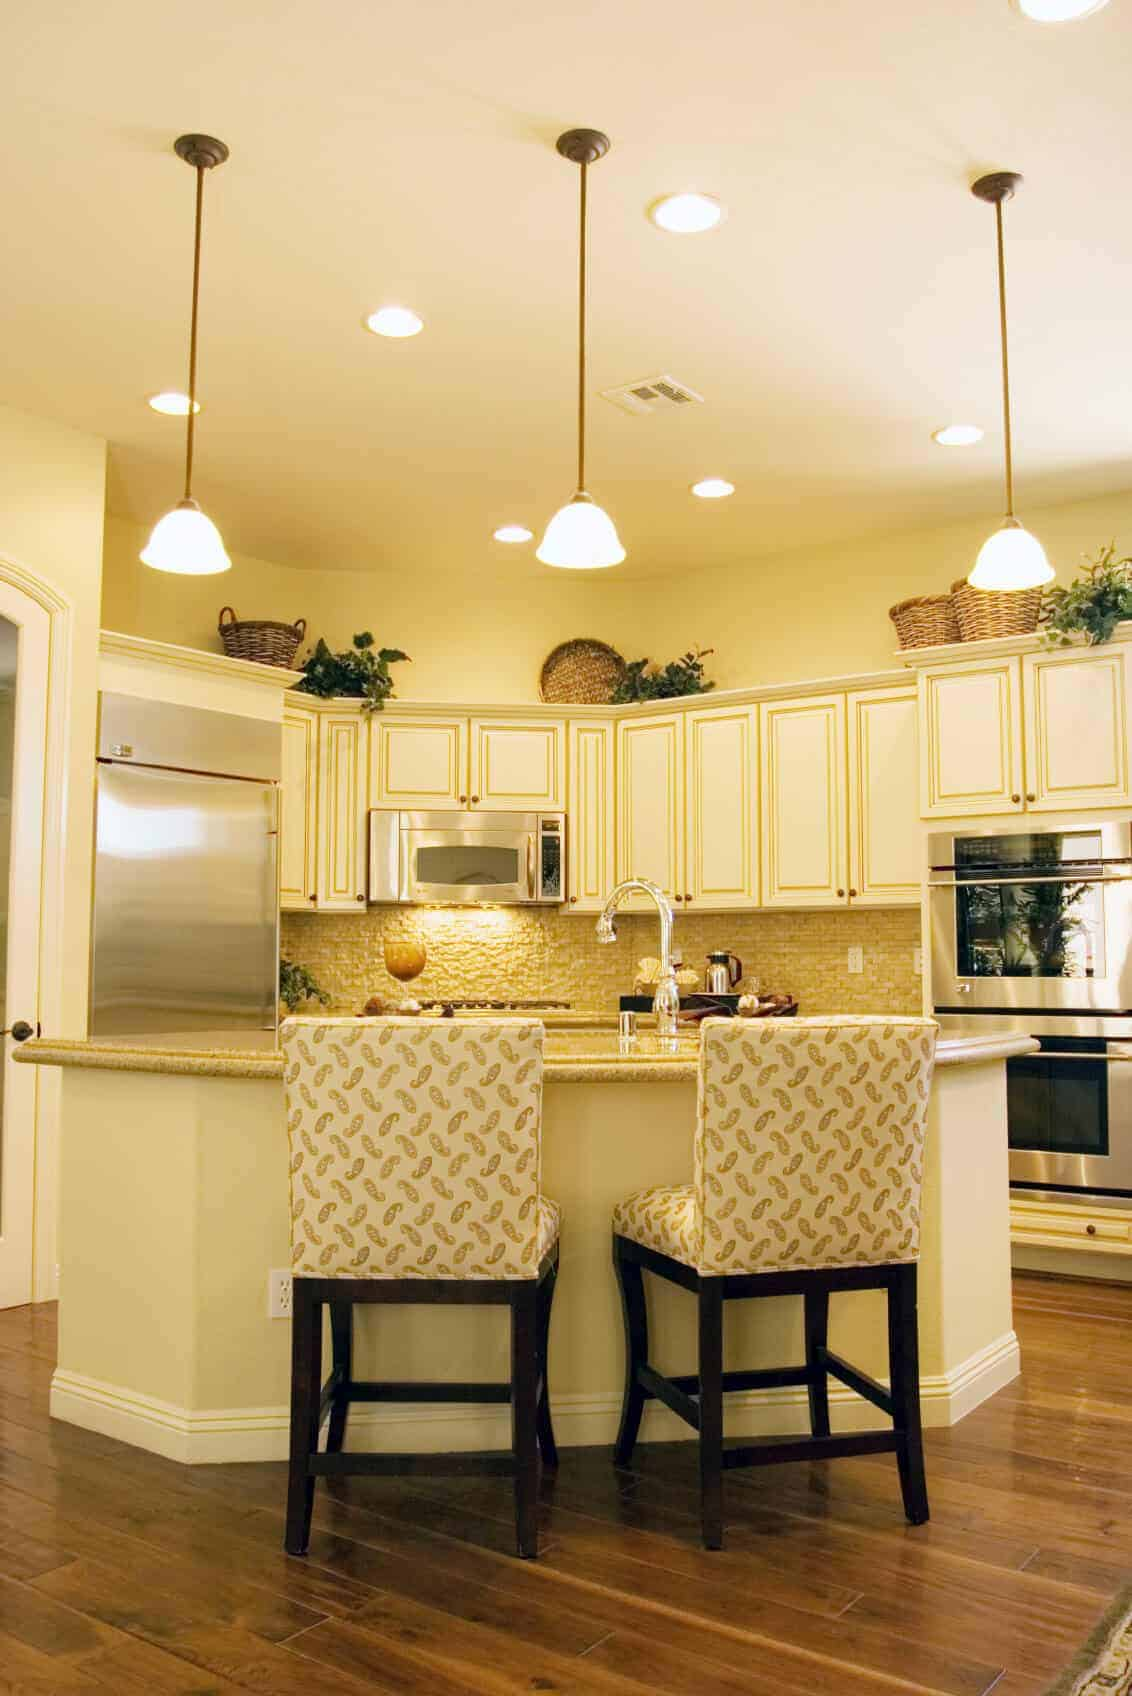 An elegant kitchen features a marble countertop island and stainless steel appliances and this room brighten by recessed ceiling lights and pendant lights.